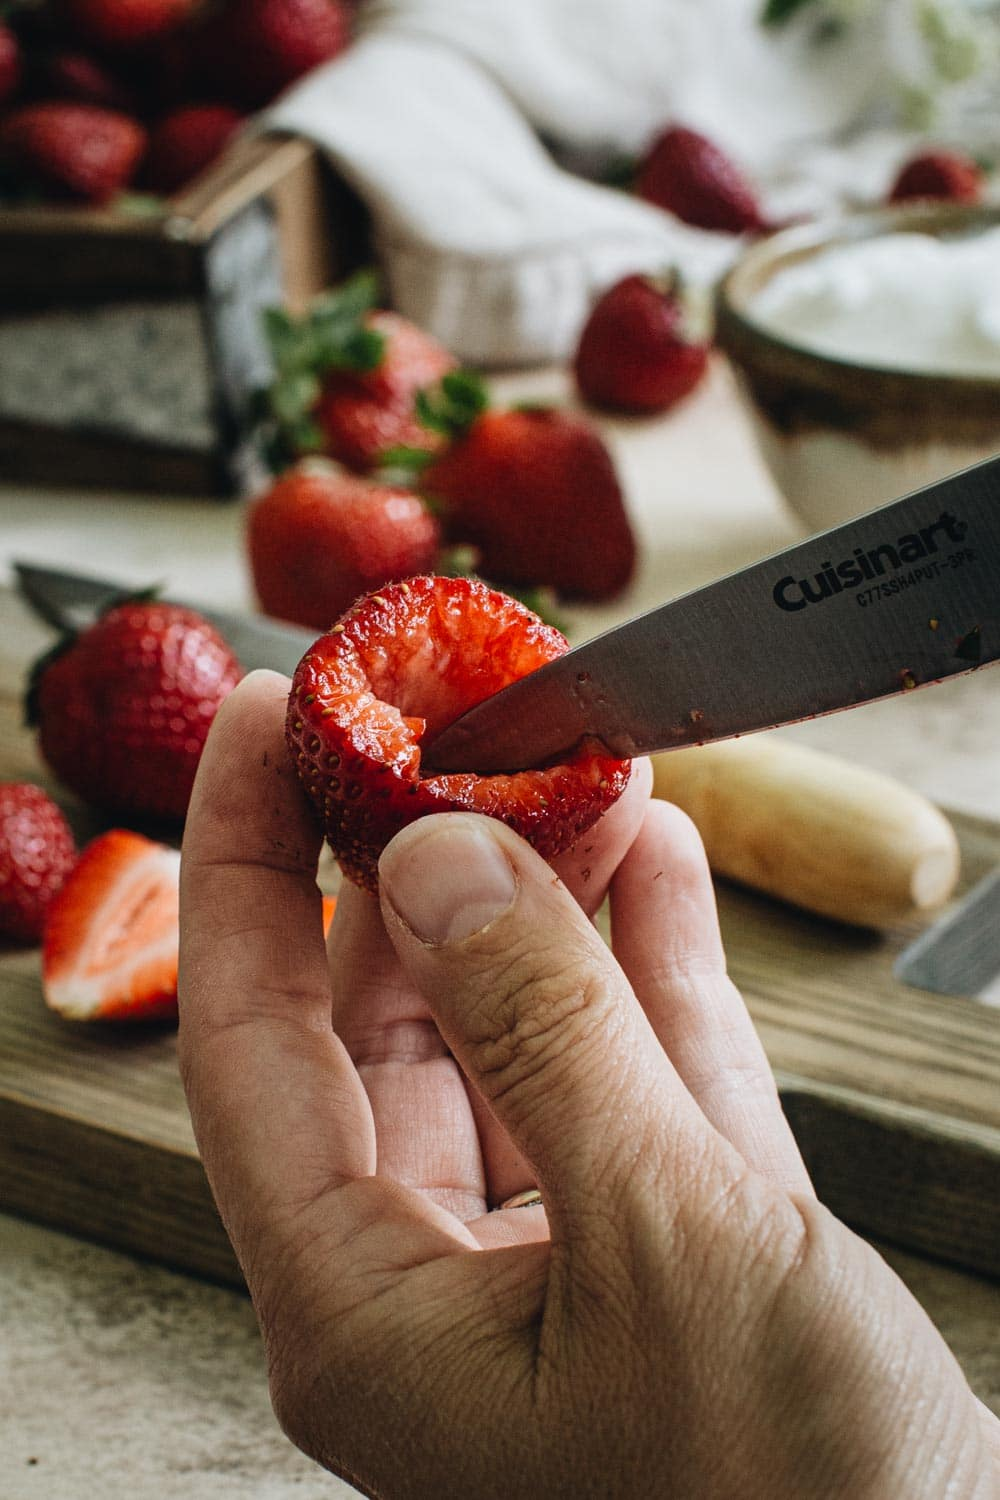 hand holding a hulled strawberry with knife pointed towards center of hull